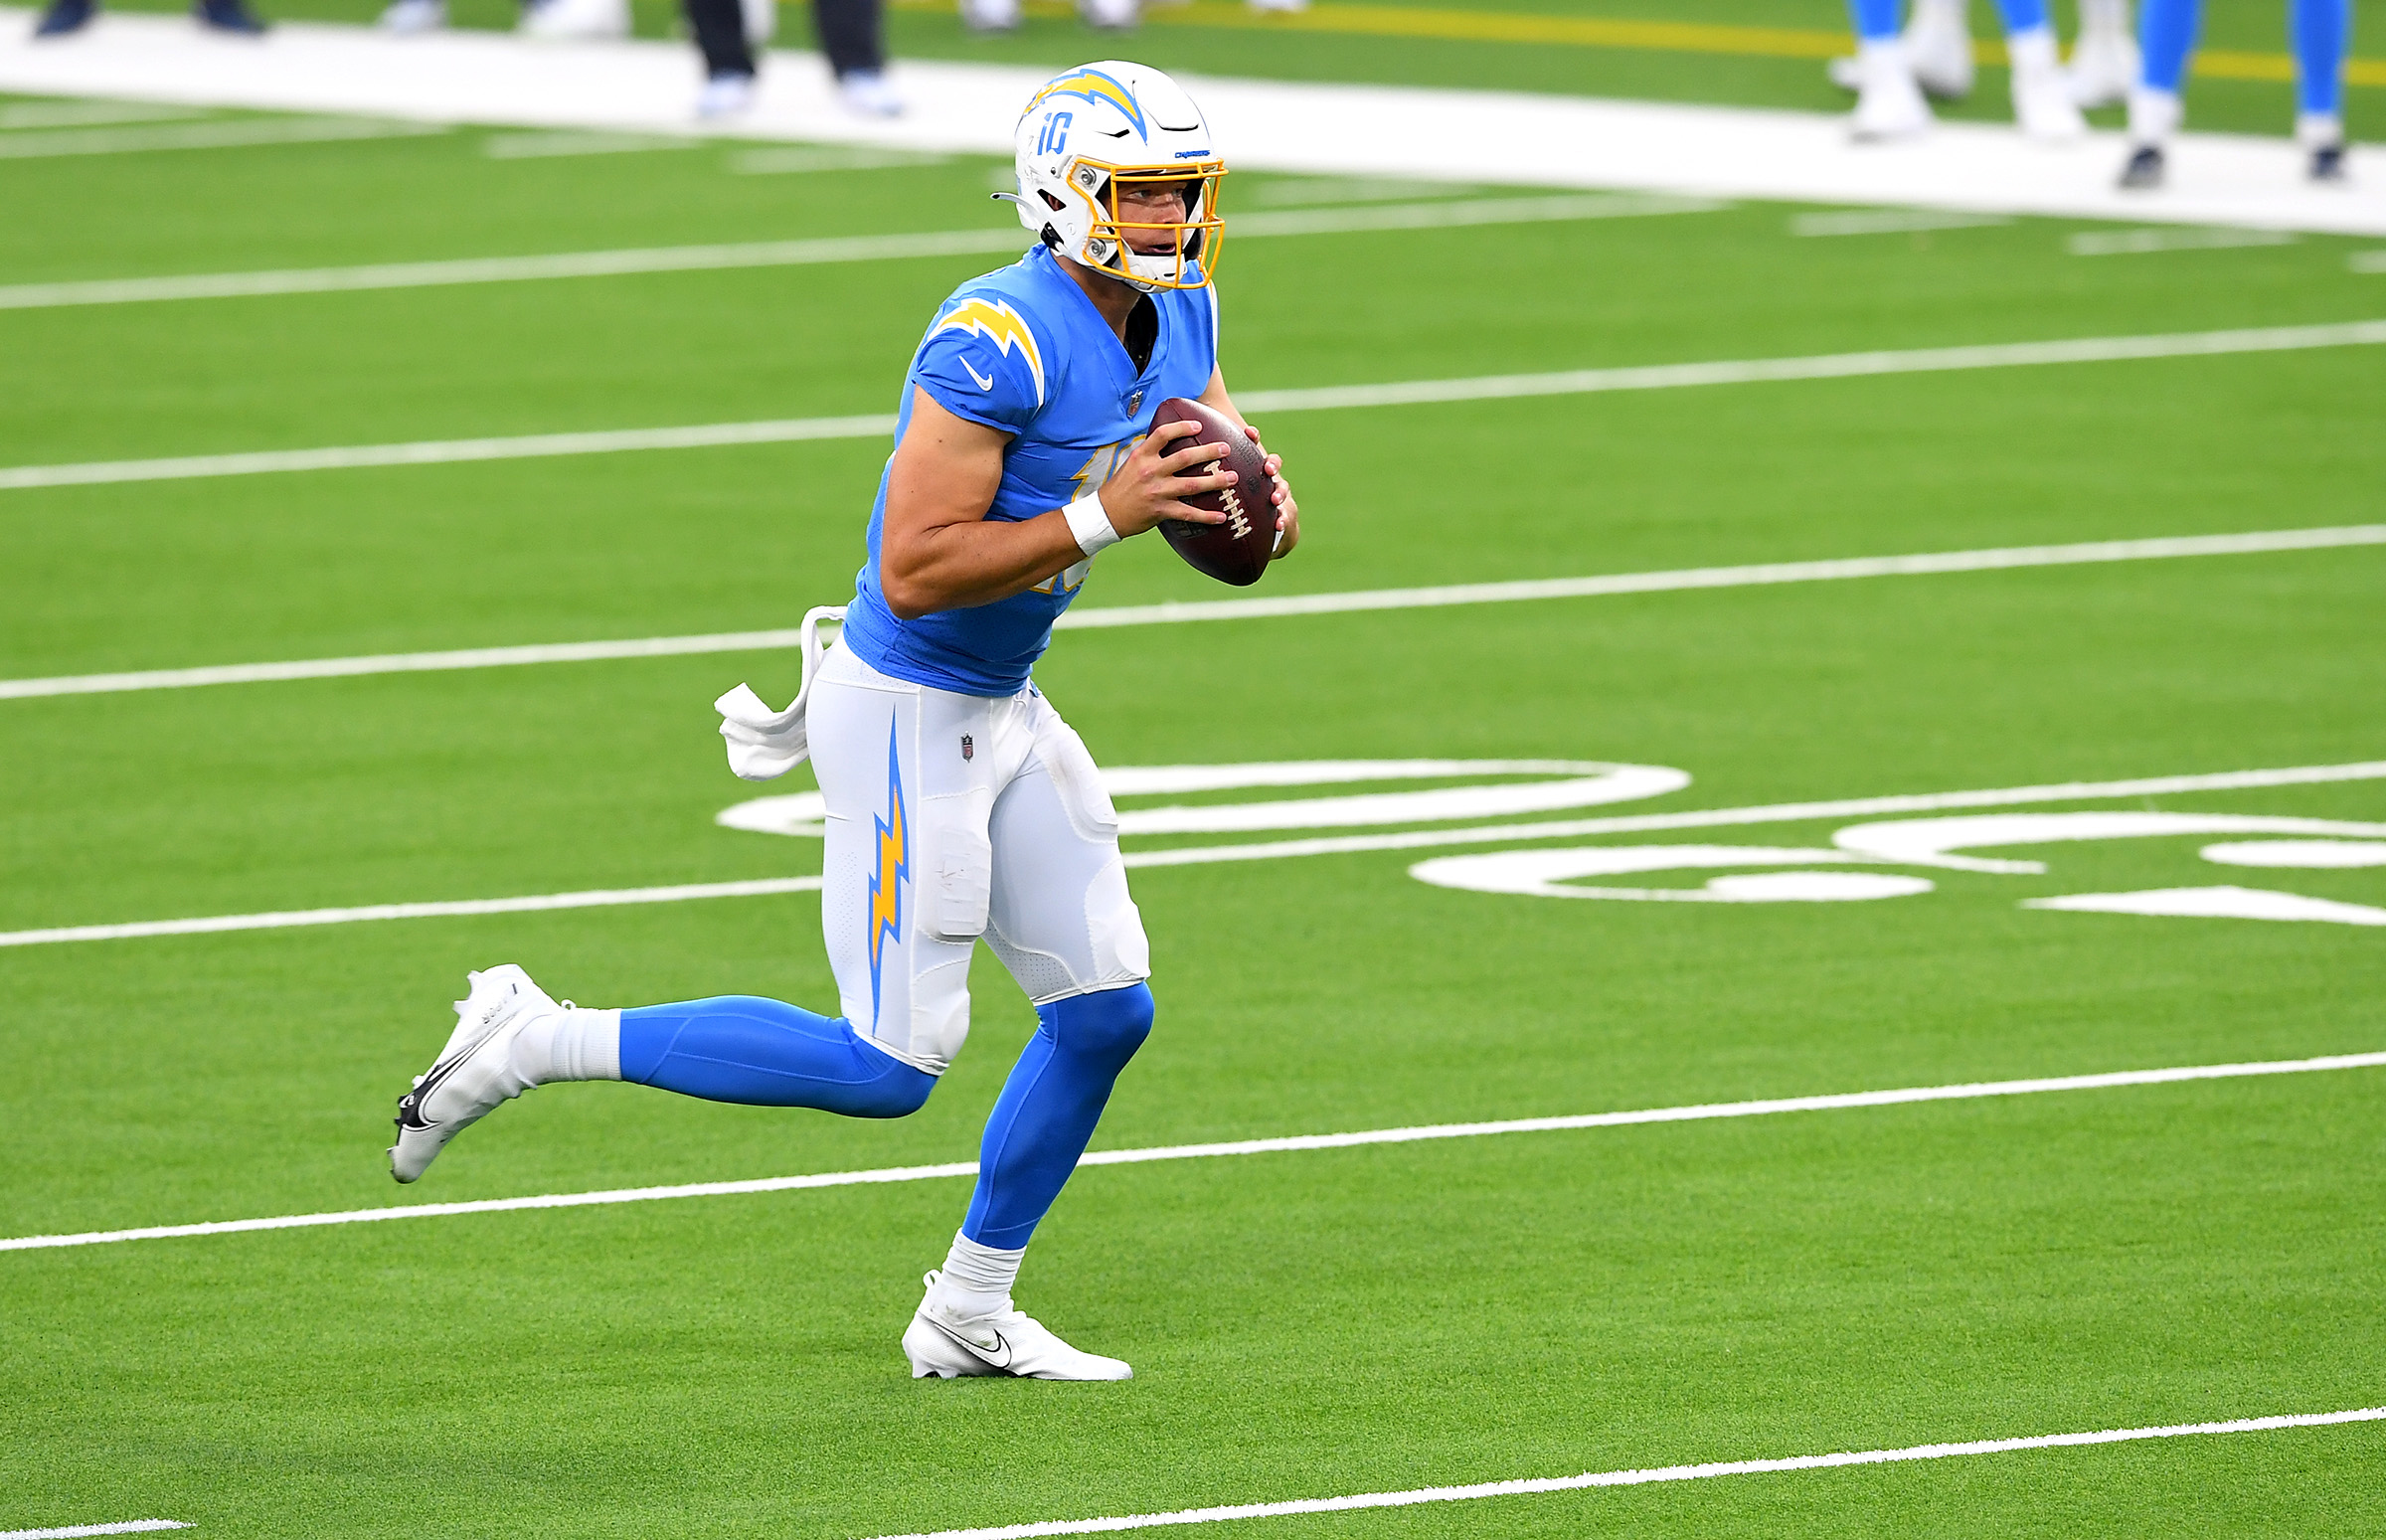 Los Angeles Chargers quarterback Justin Herbert (10) rolls out to throw a touchdown pass to wide receiver Keenan Allen (not pictured) against the New York Jets in the second half at SoFi Stadium.